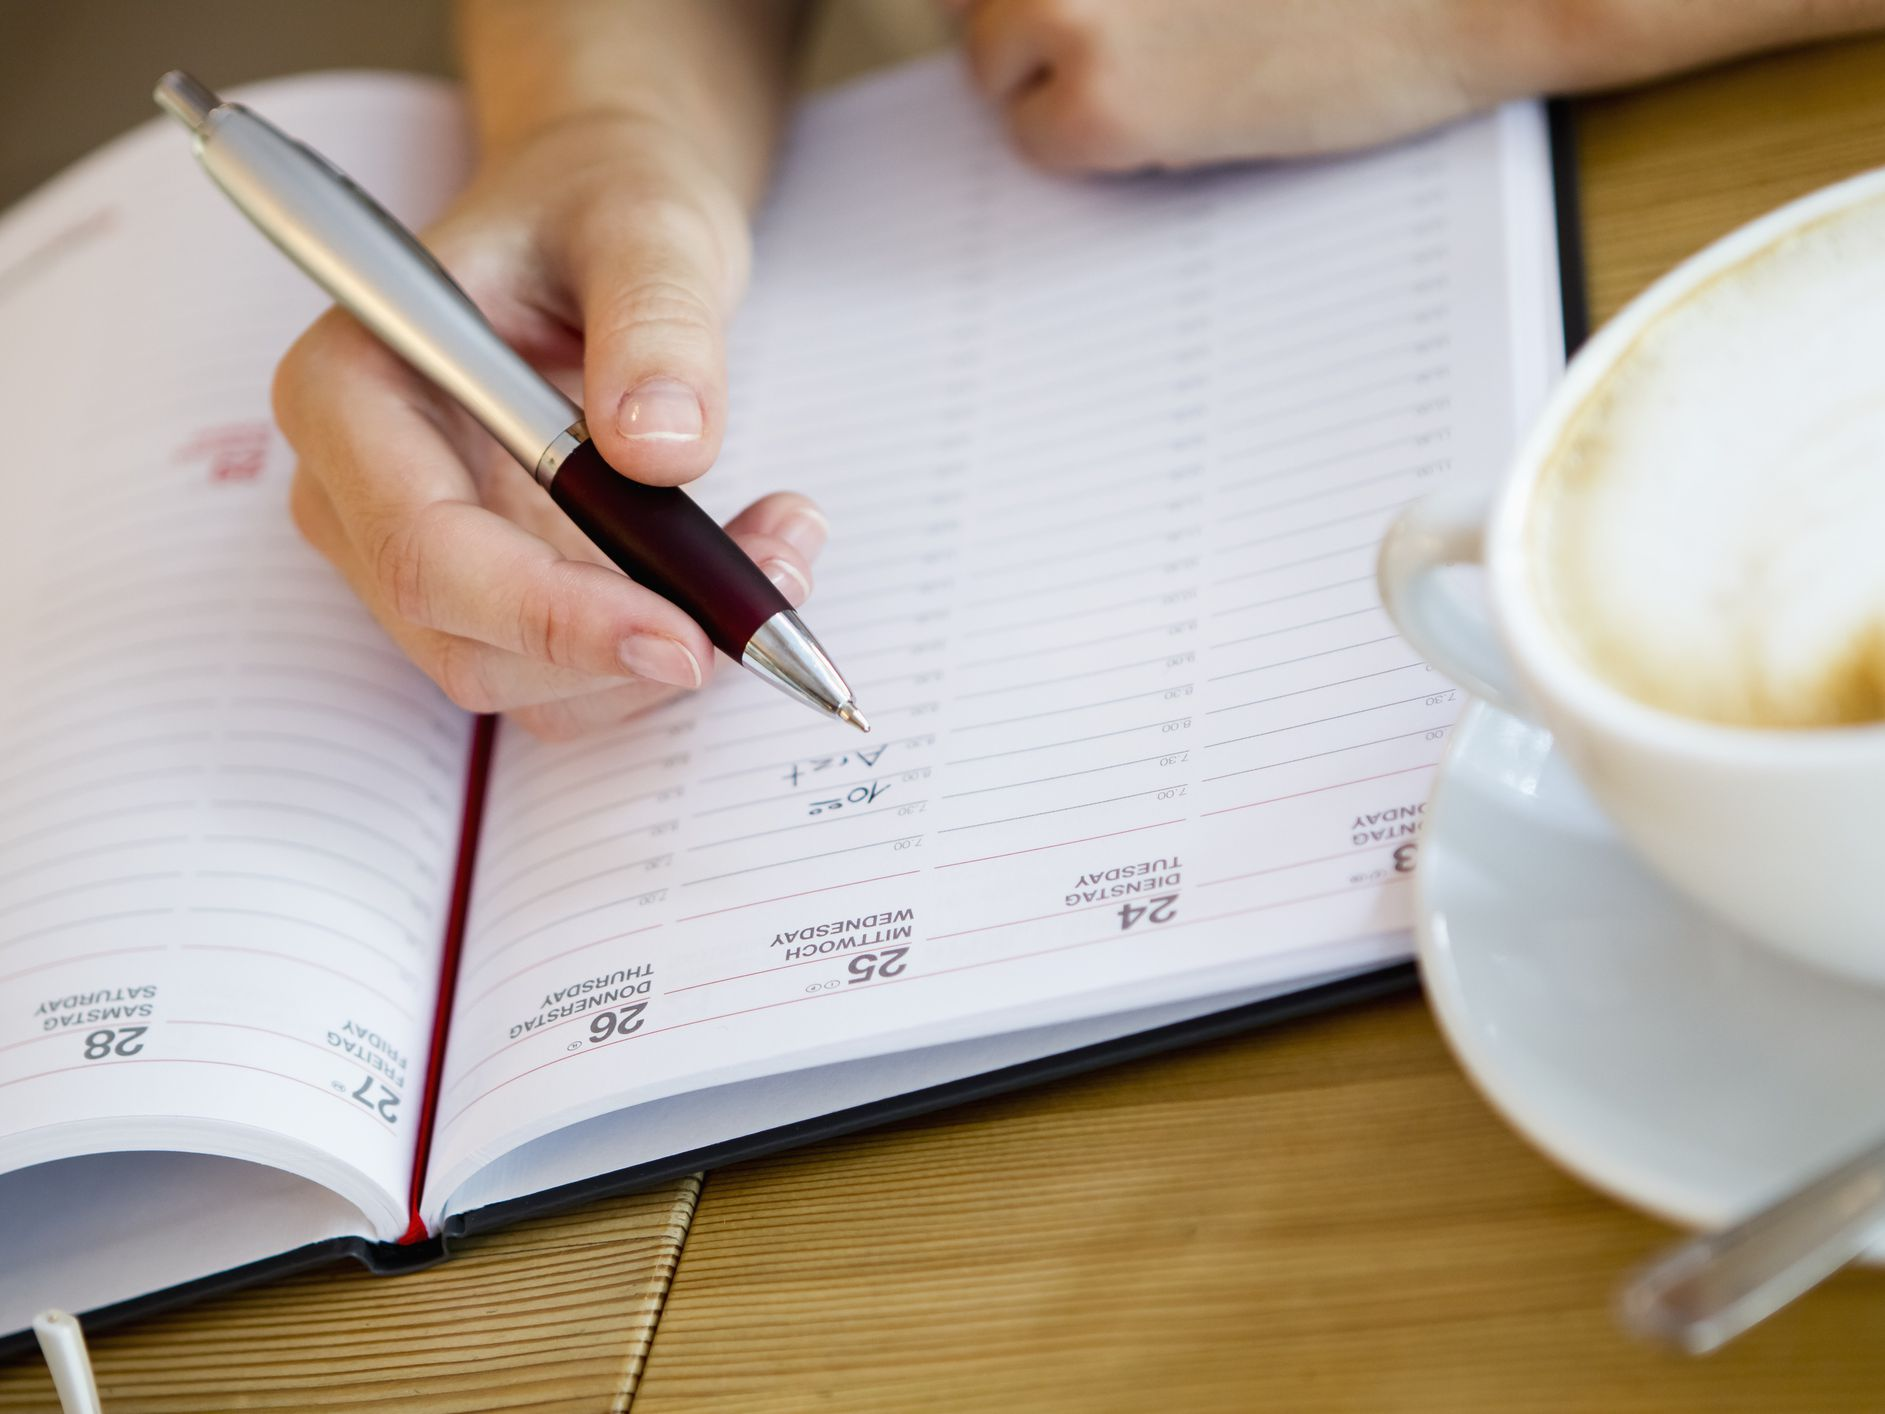 The 9 Best Day Planners of 2019